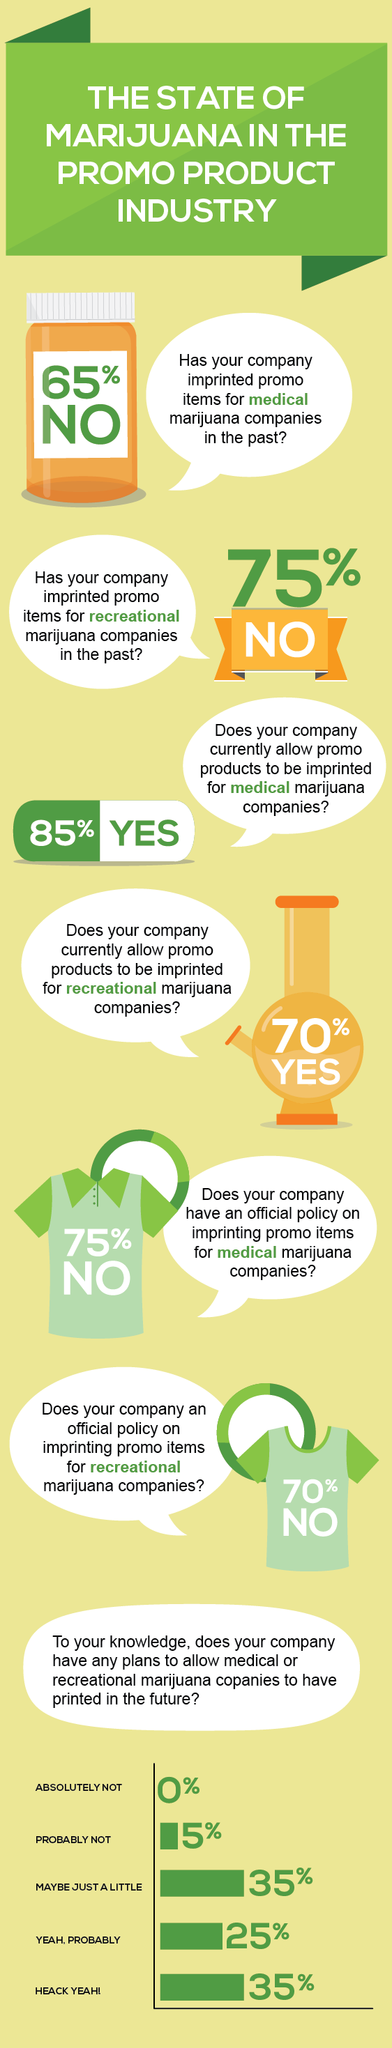 Marijuana in the promotional products industry